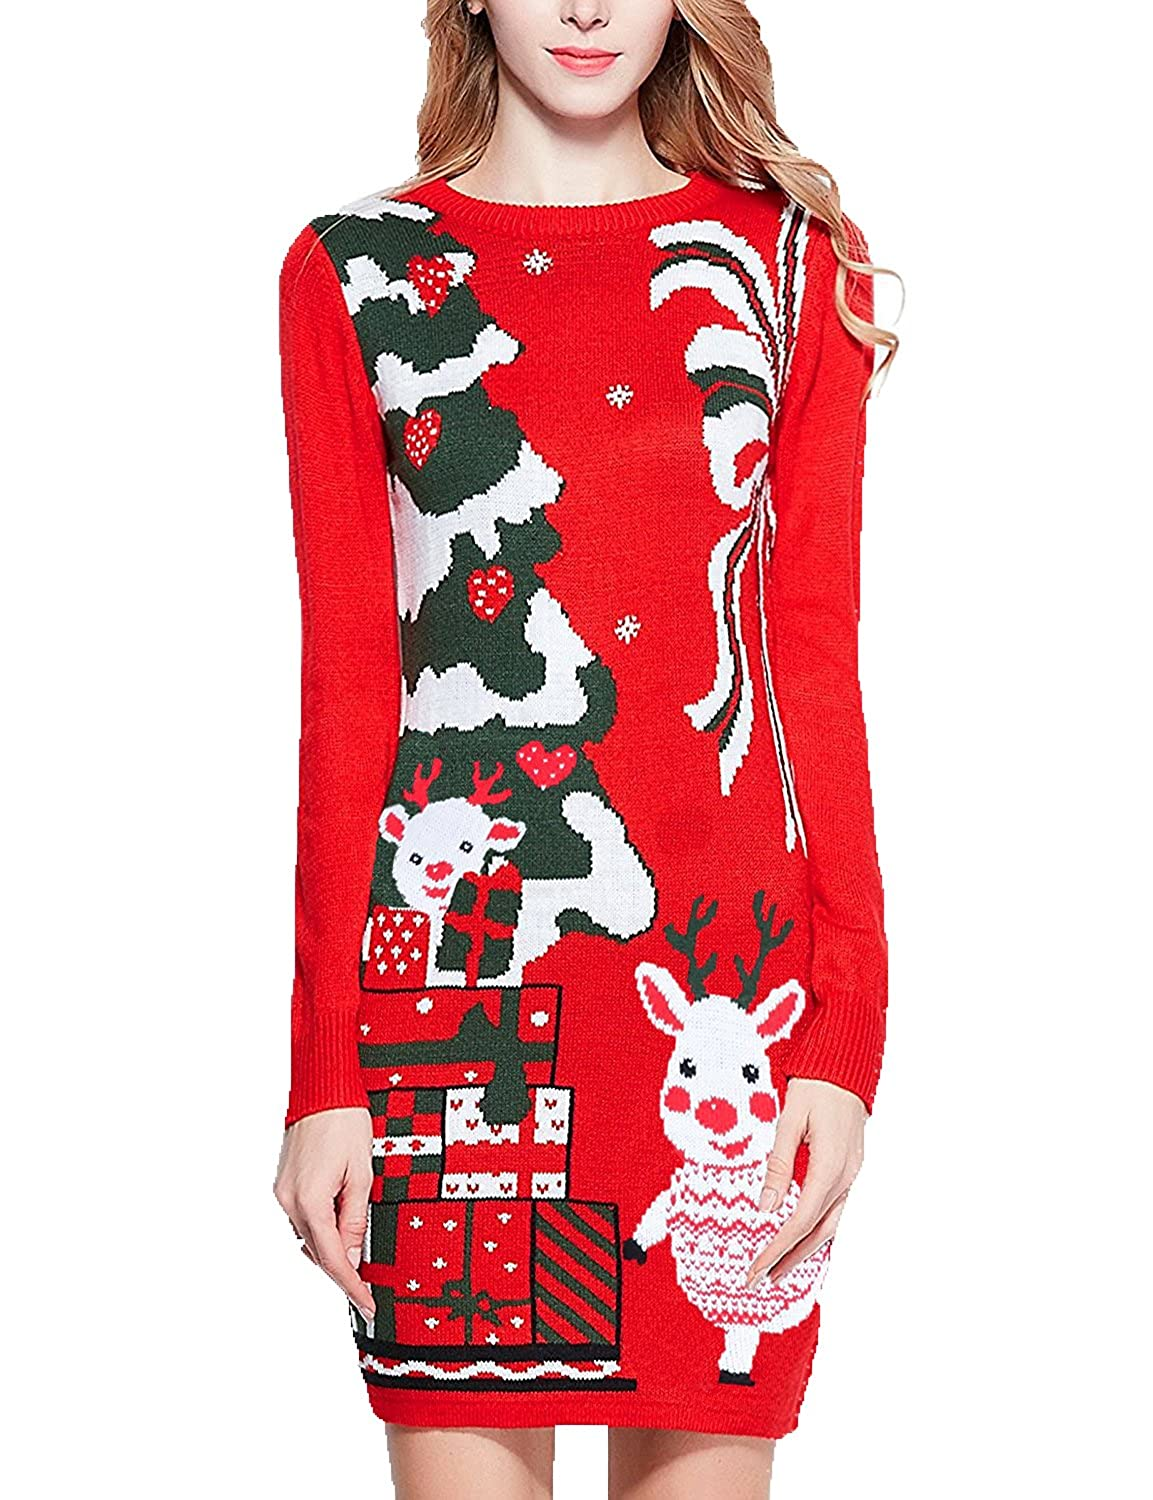 6a792dc1b5d6 Christmas Sweater, V28 Women Ugly Holiday Knit Cute Pullover Xmas Sweater  Dress: Amazon.ca: Clothing & Accessories